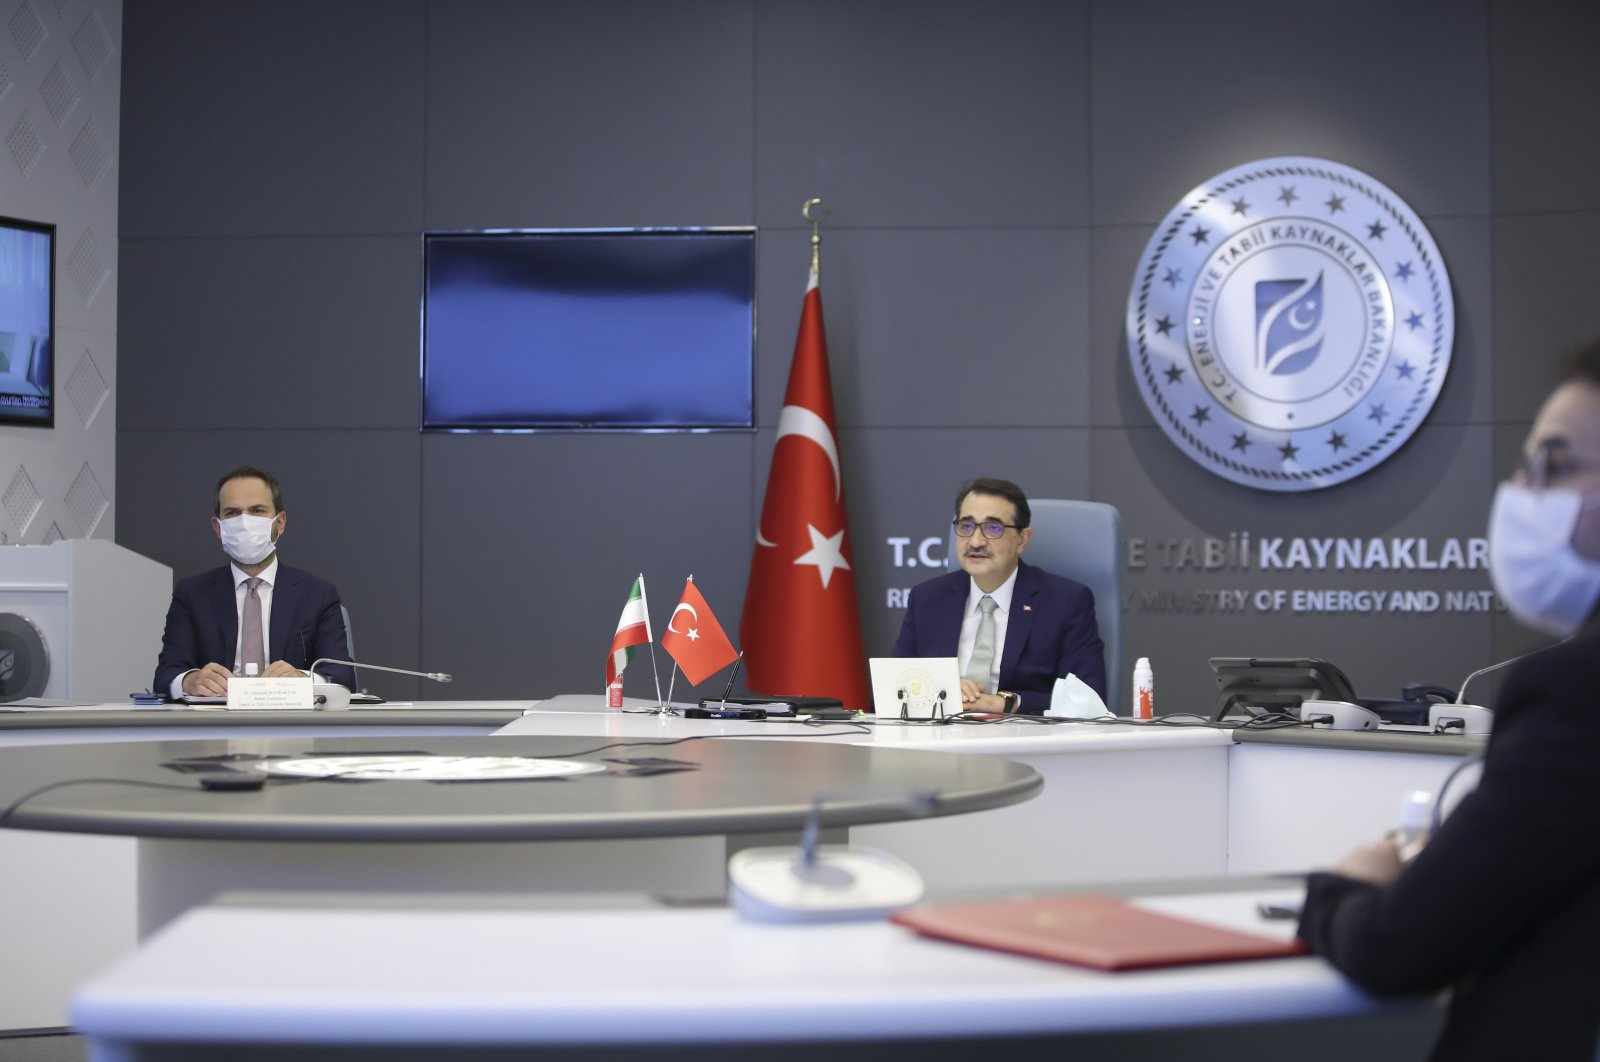 Energy and Natural Resources Minister Fatih Dönmez adresses the virtual Turkey-Iran Joint Economic Commission meeting, Ankara, Turkey, April 28, 2021. (AA Photo)